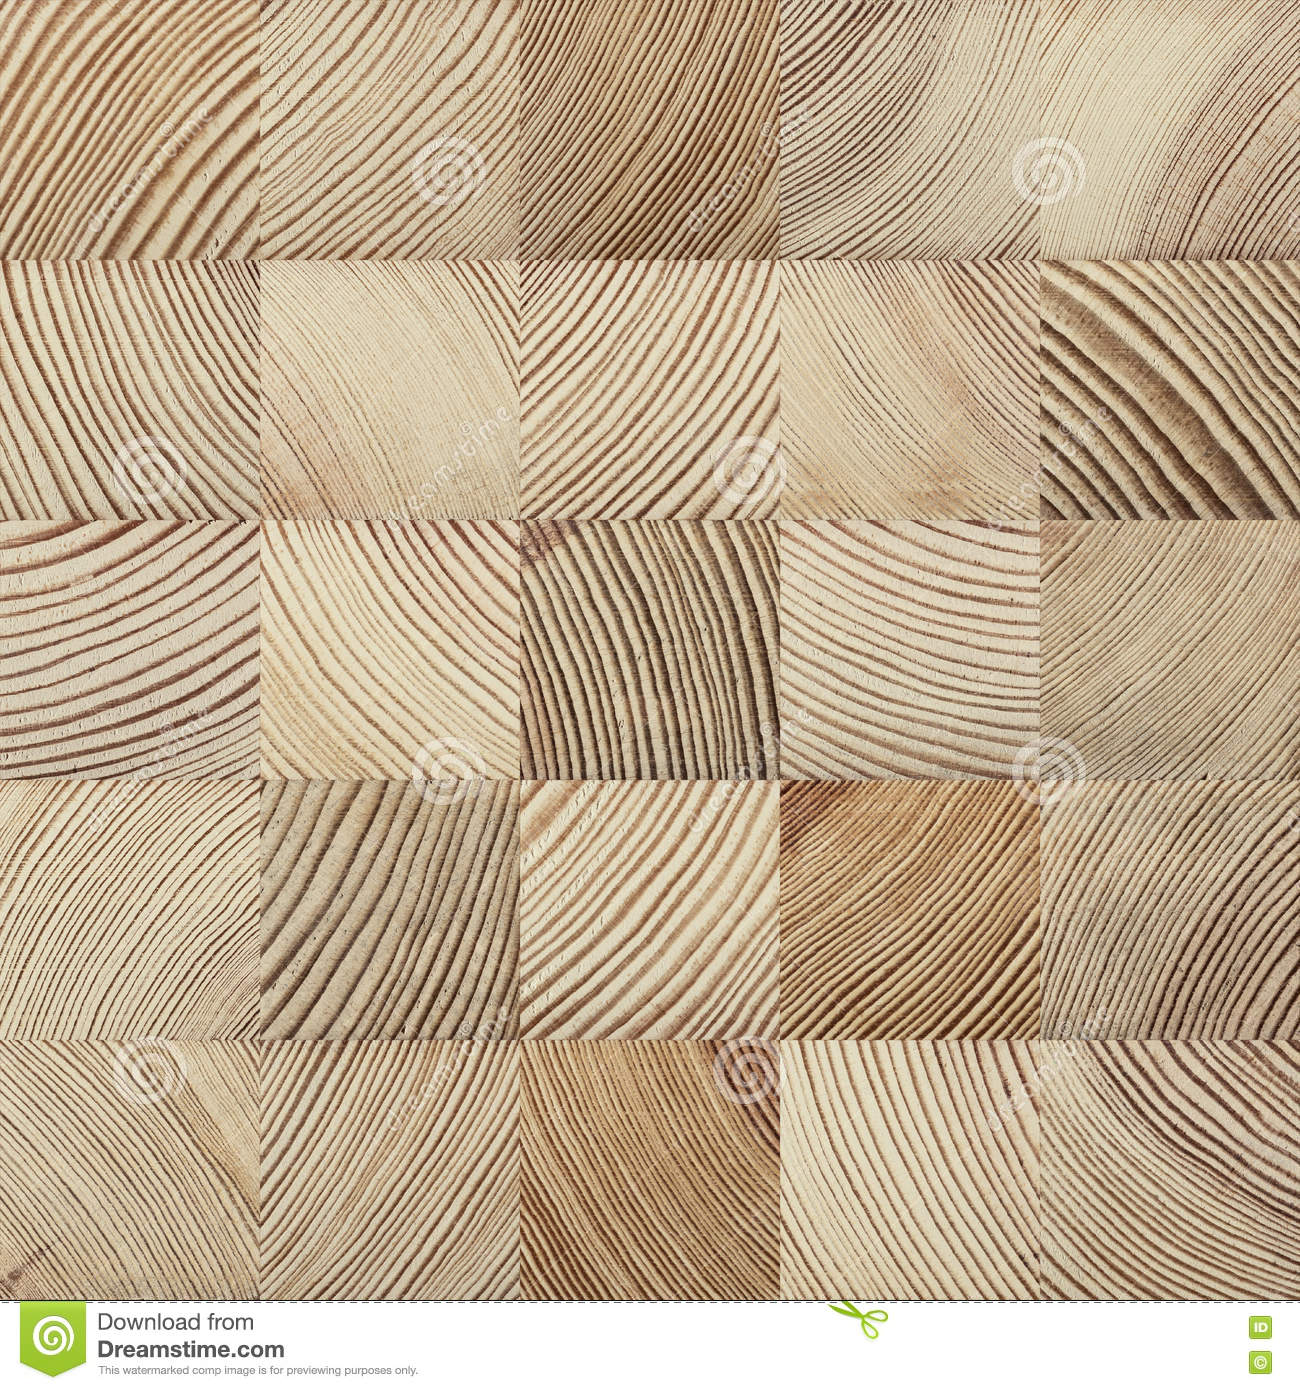 End Grain Wood Texture Stock Photo  Image: 74359447 - Butcher Block Table Plans